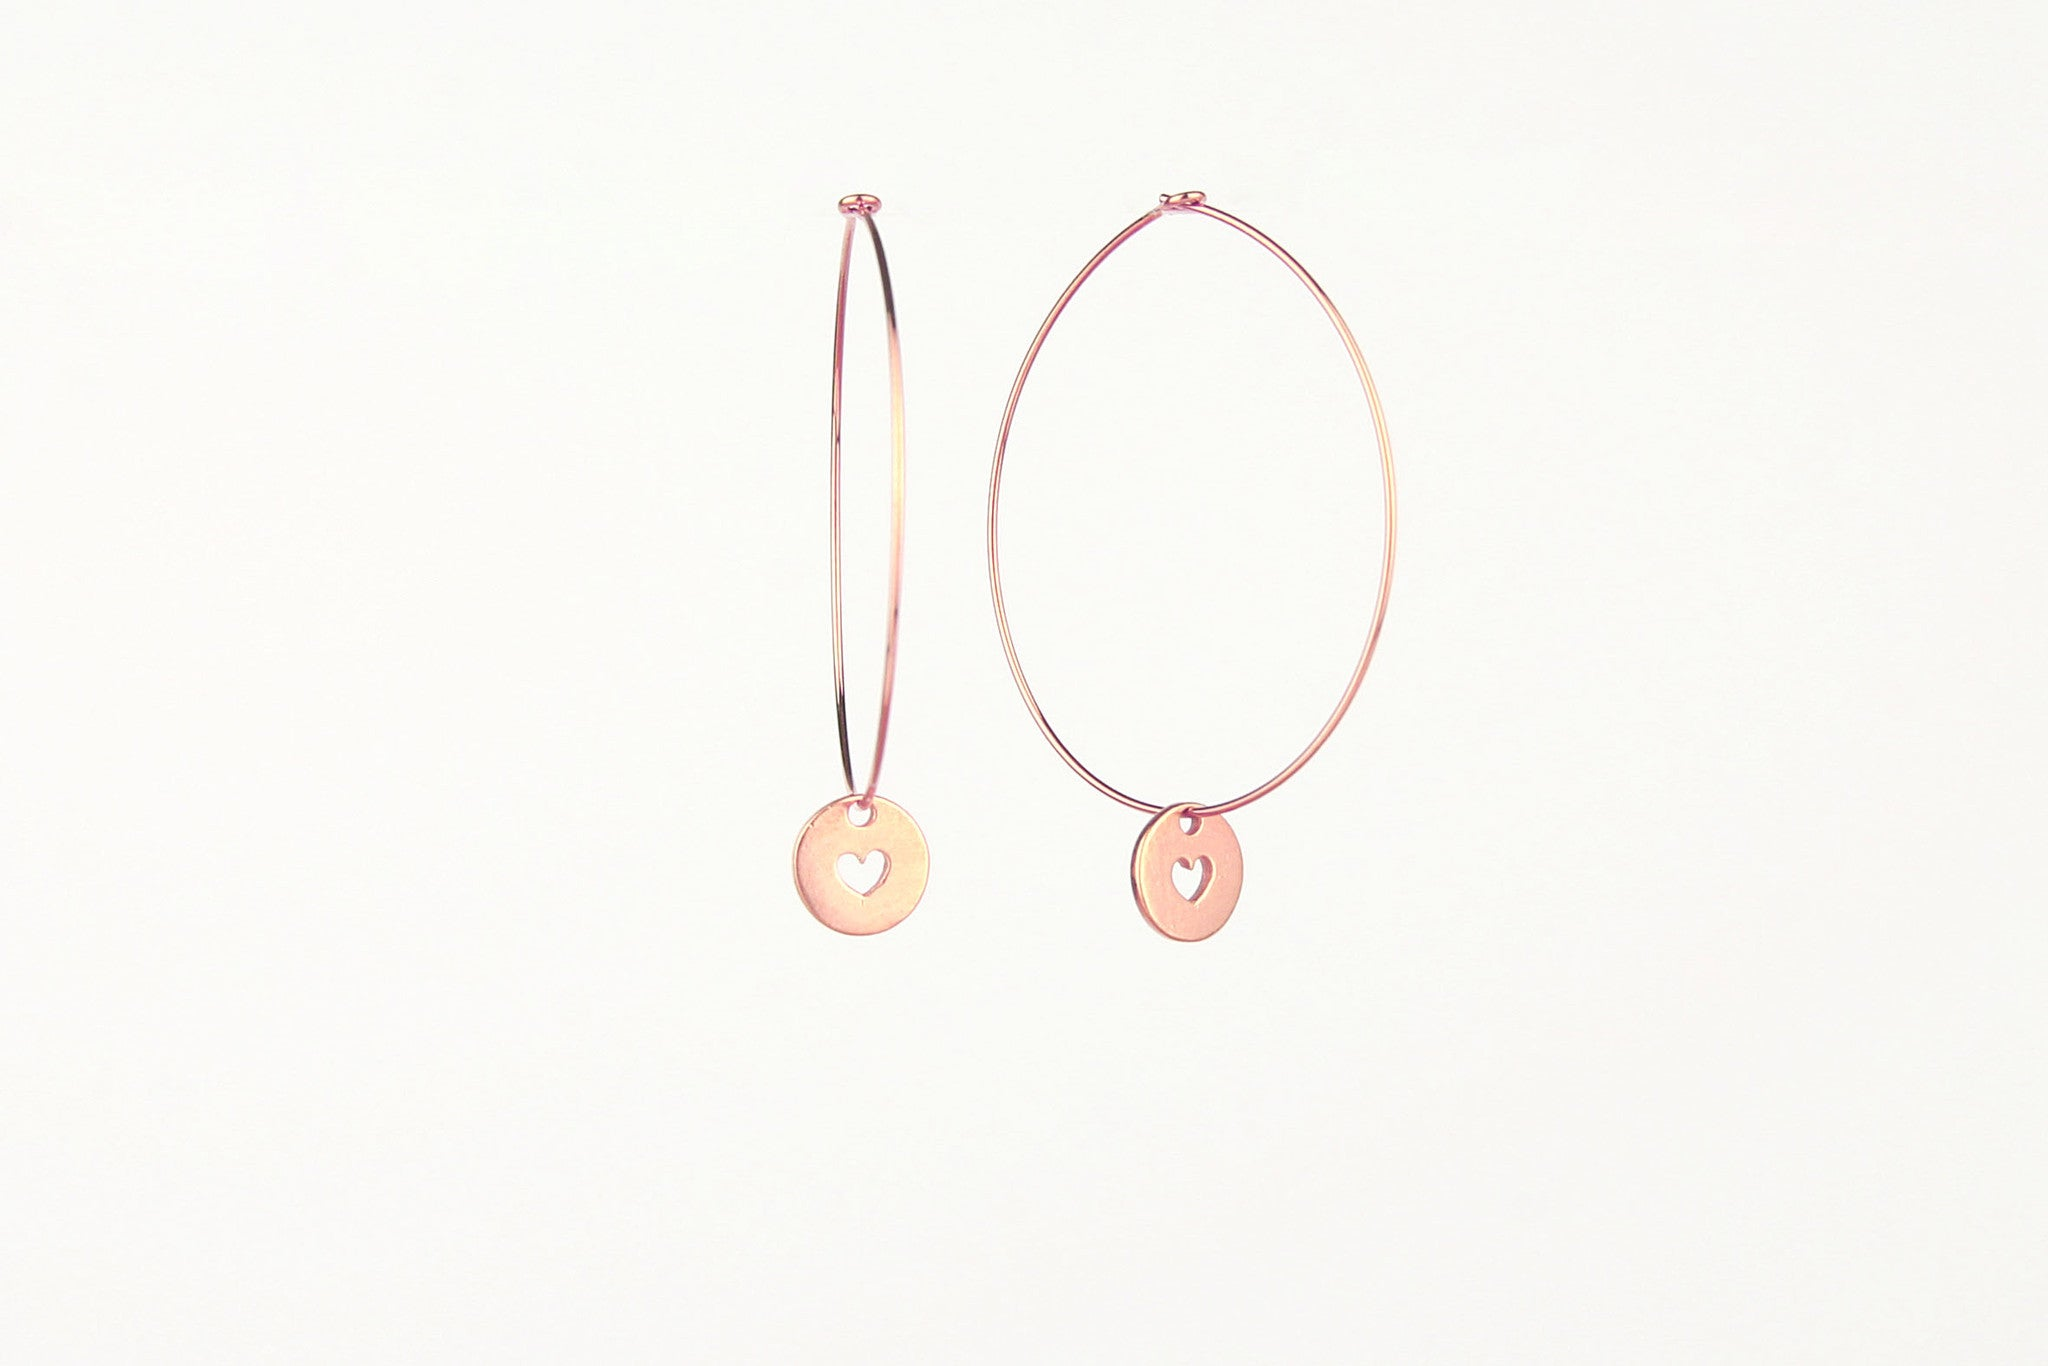 jewelberry ohrringe earrings love token hoops rose gold plated sterling silver fine jewelry handmade with love fairtrade